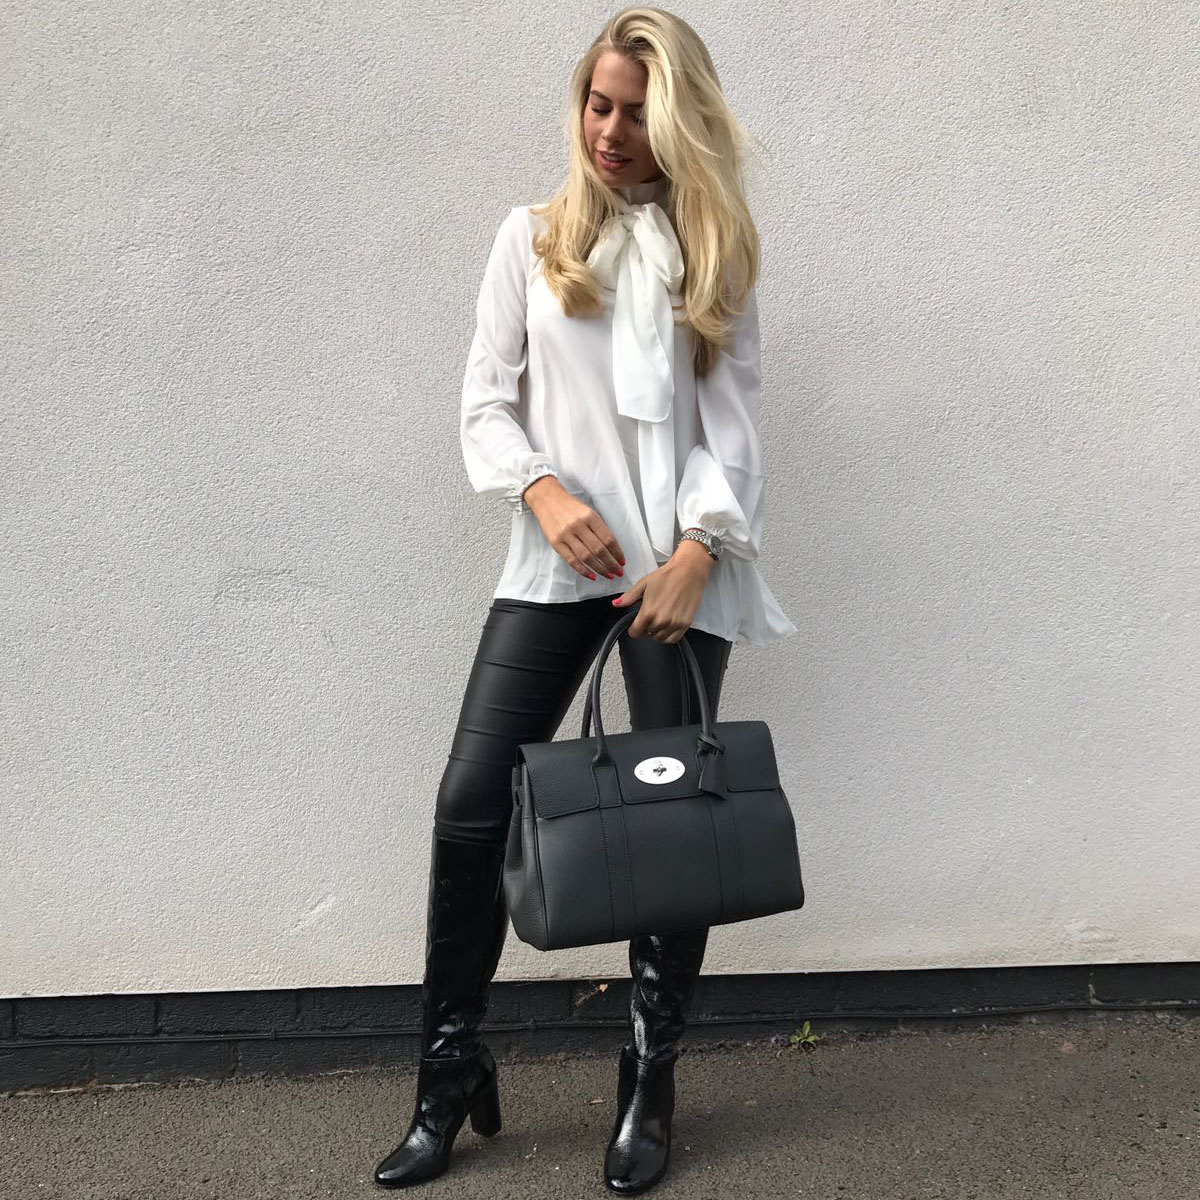 a234209ff89 nice tops to wear with jeans - SilkFred Blog